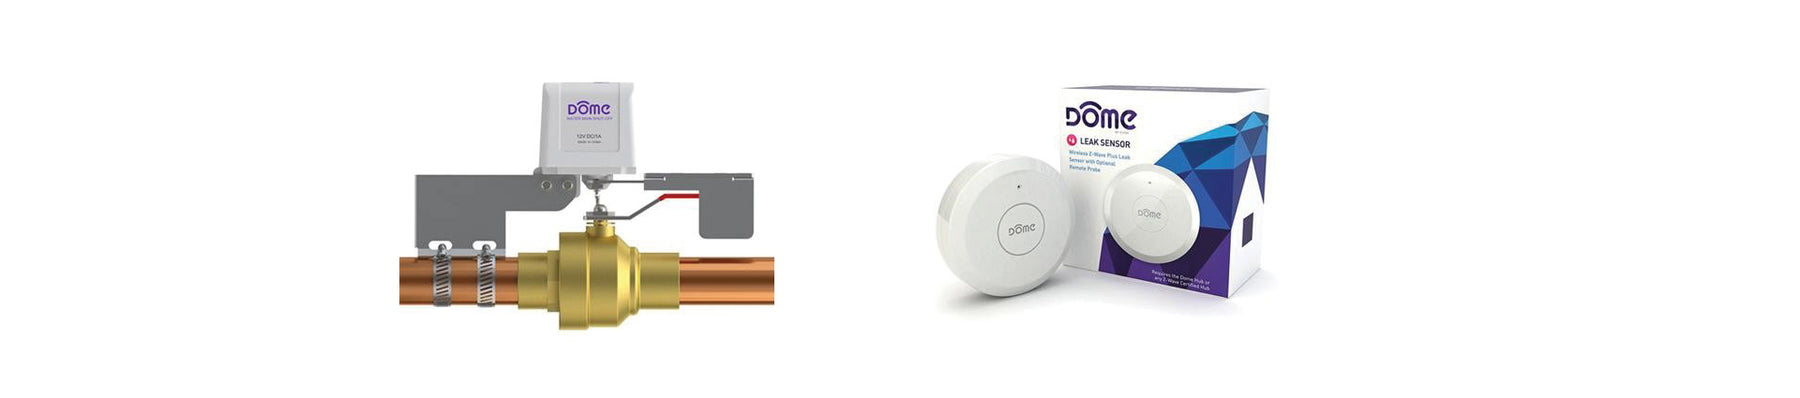 Alert Yourself to Floods and Water Damage with Z-Wave and Dome